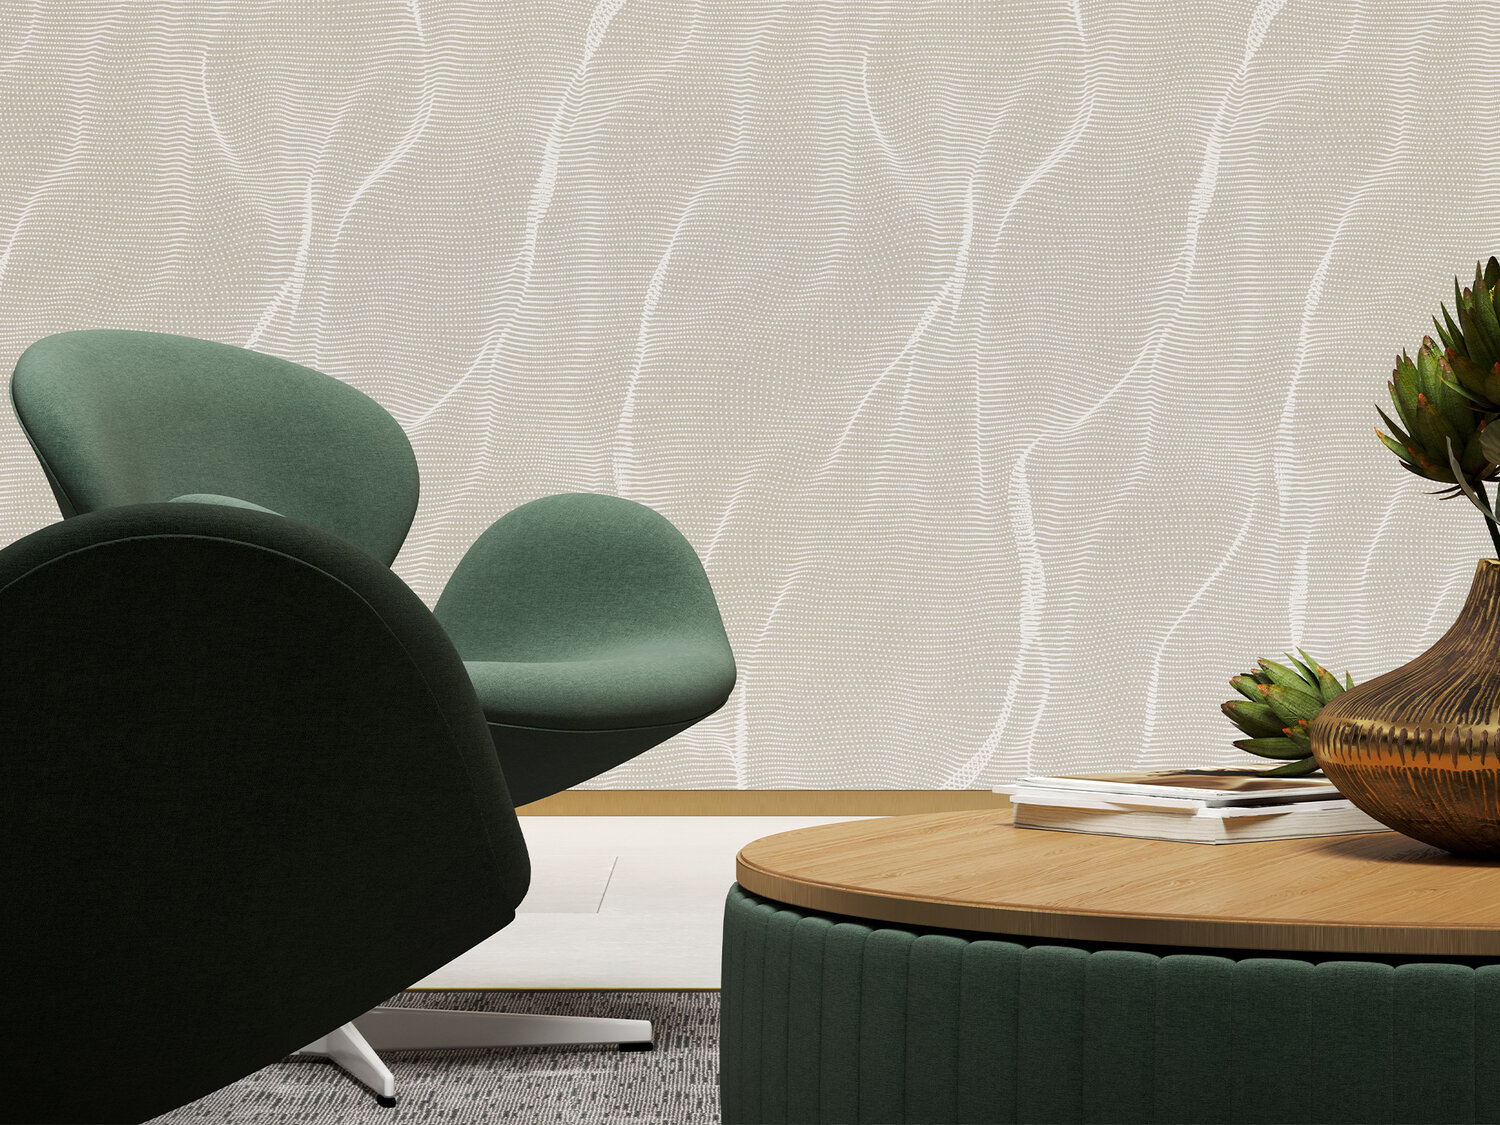 Surface Design Awards 2020 - Woven Image MUSE acoustic panels